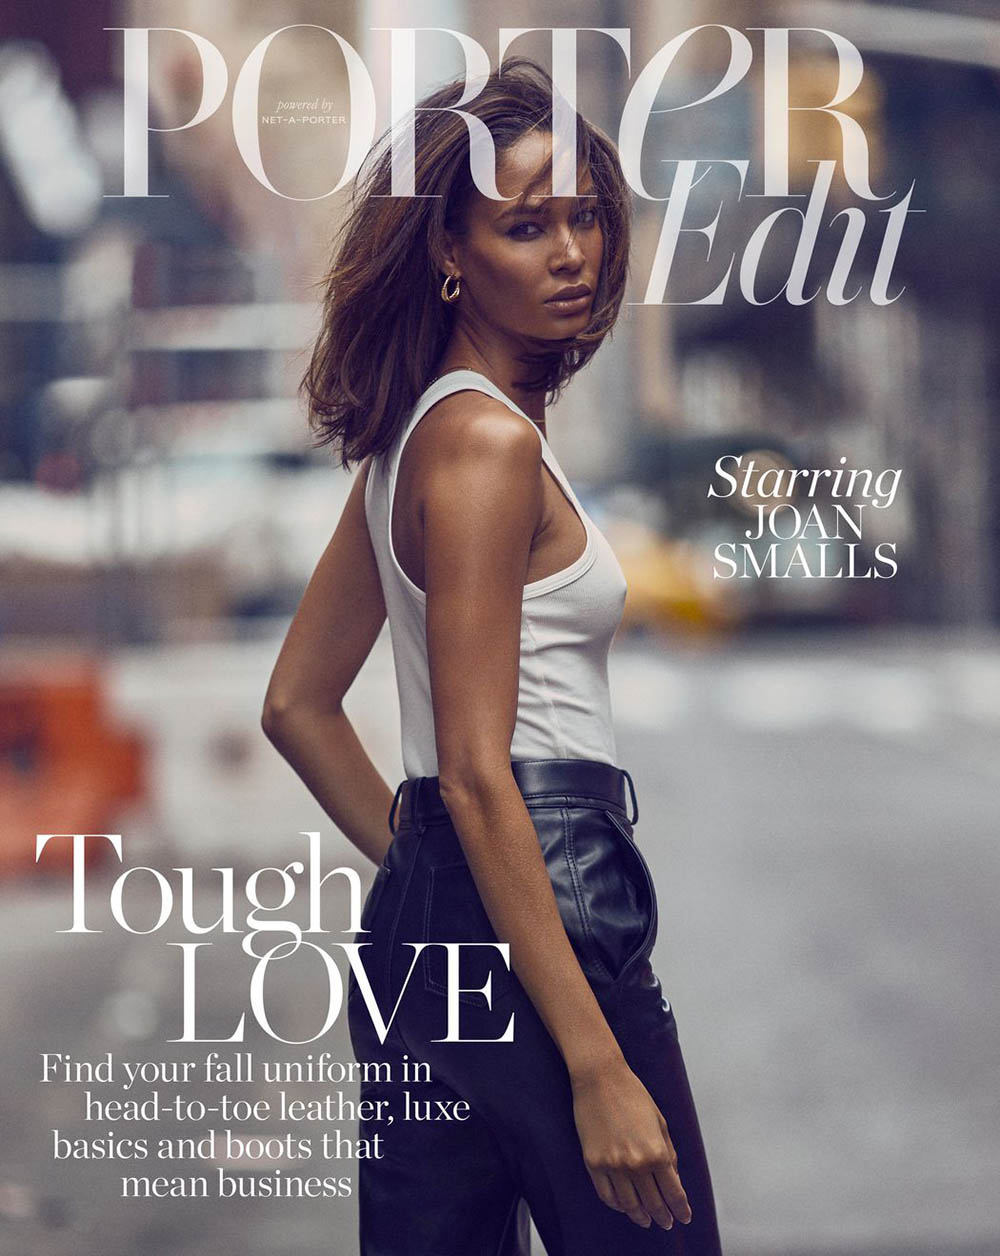 Joan Smalls covers Porter Edit September 6th, 2019 by Billy Kidd